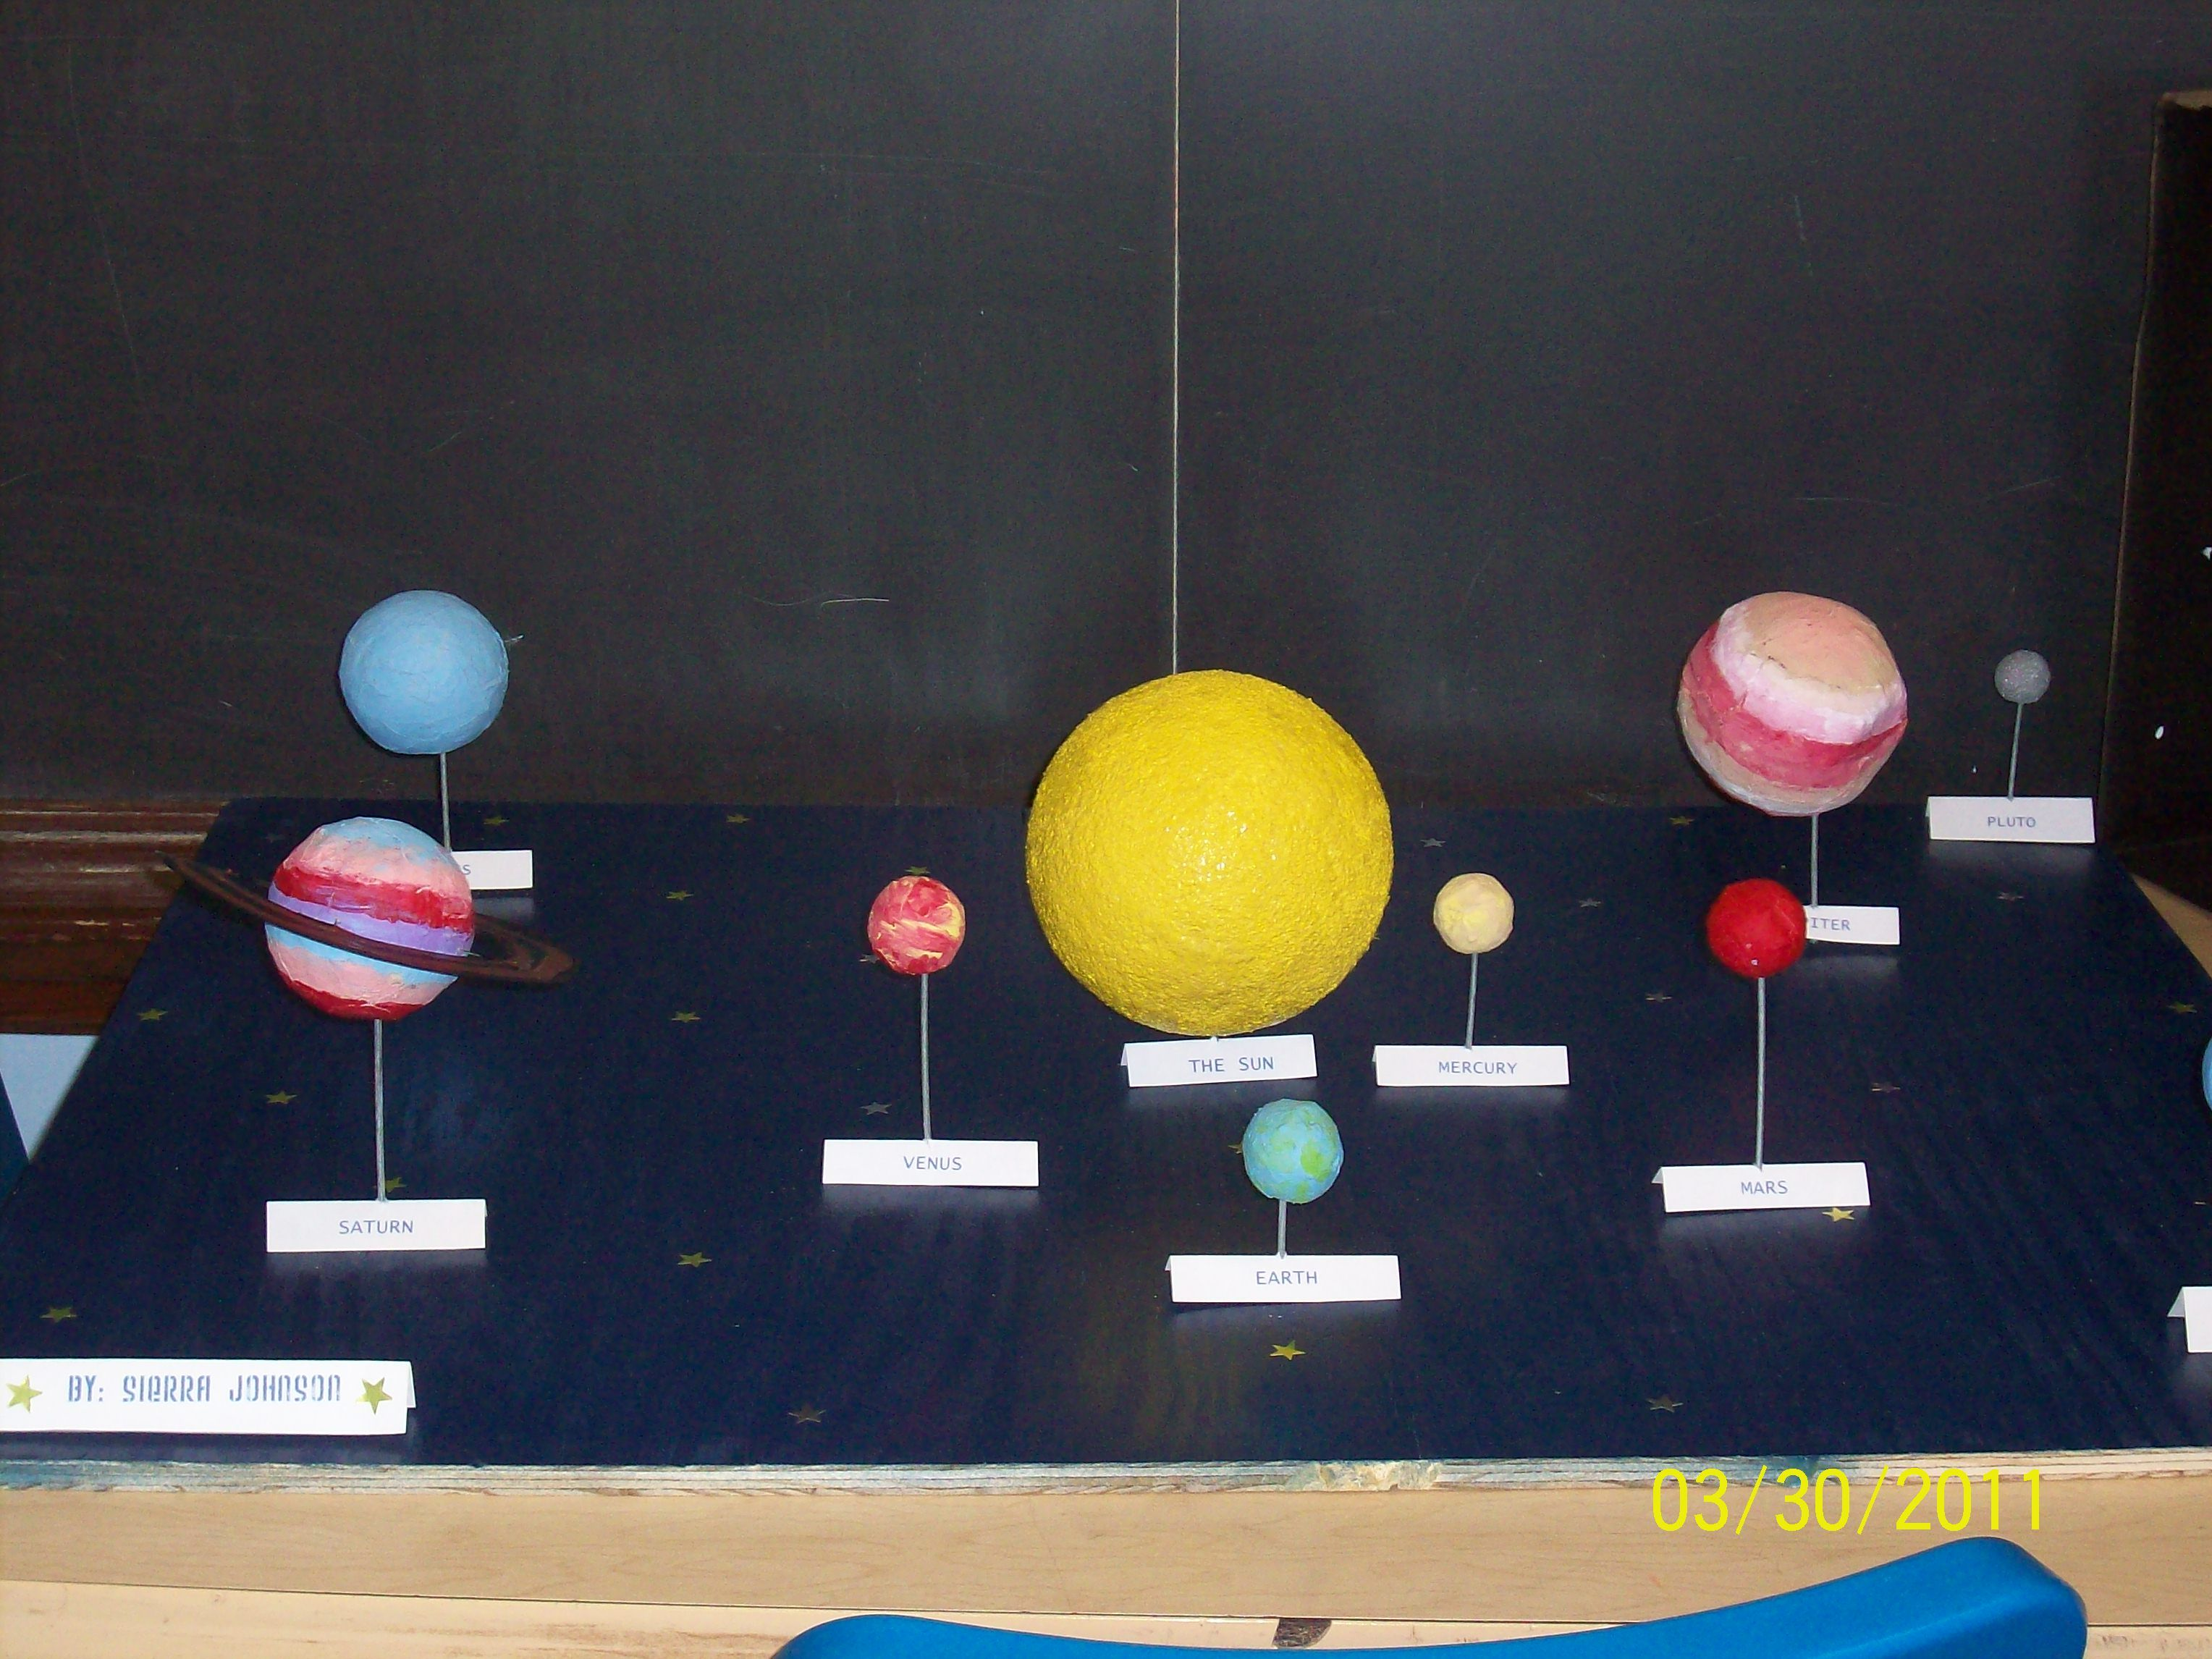 solar system projects for 3rd grade - photo #28